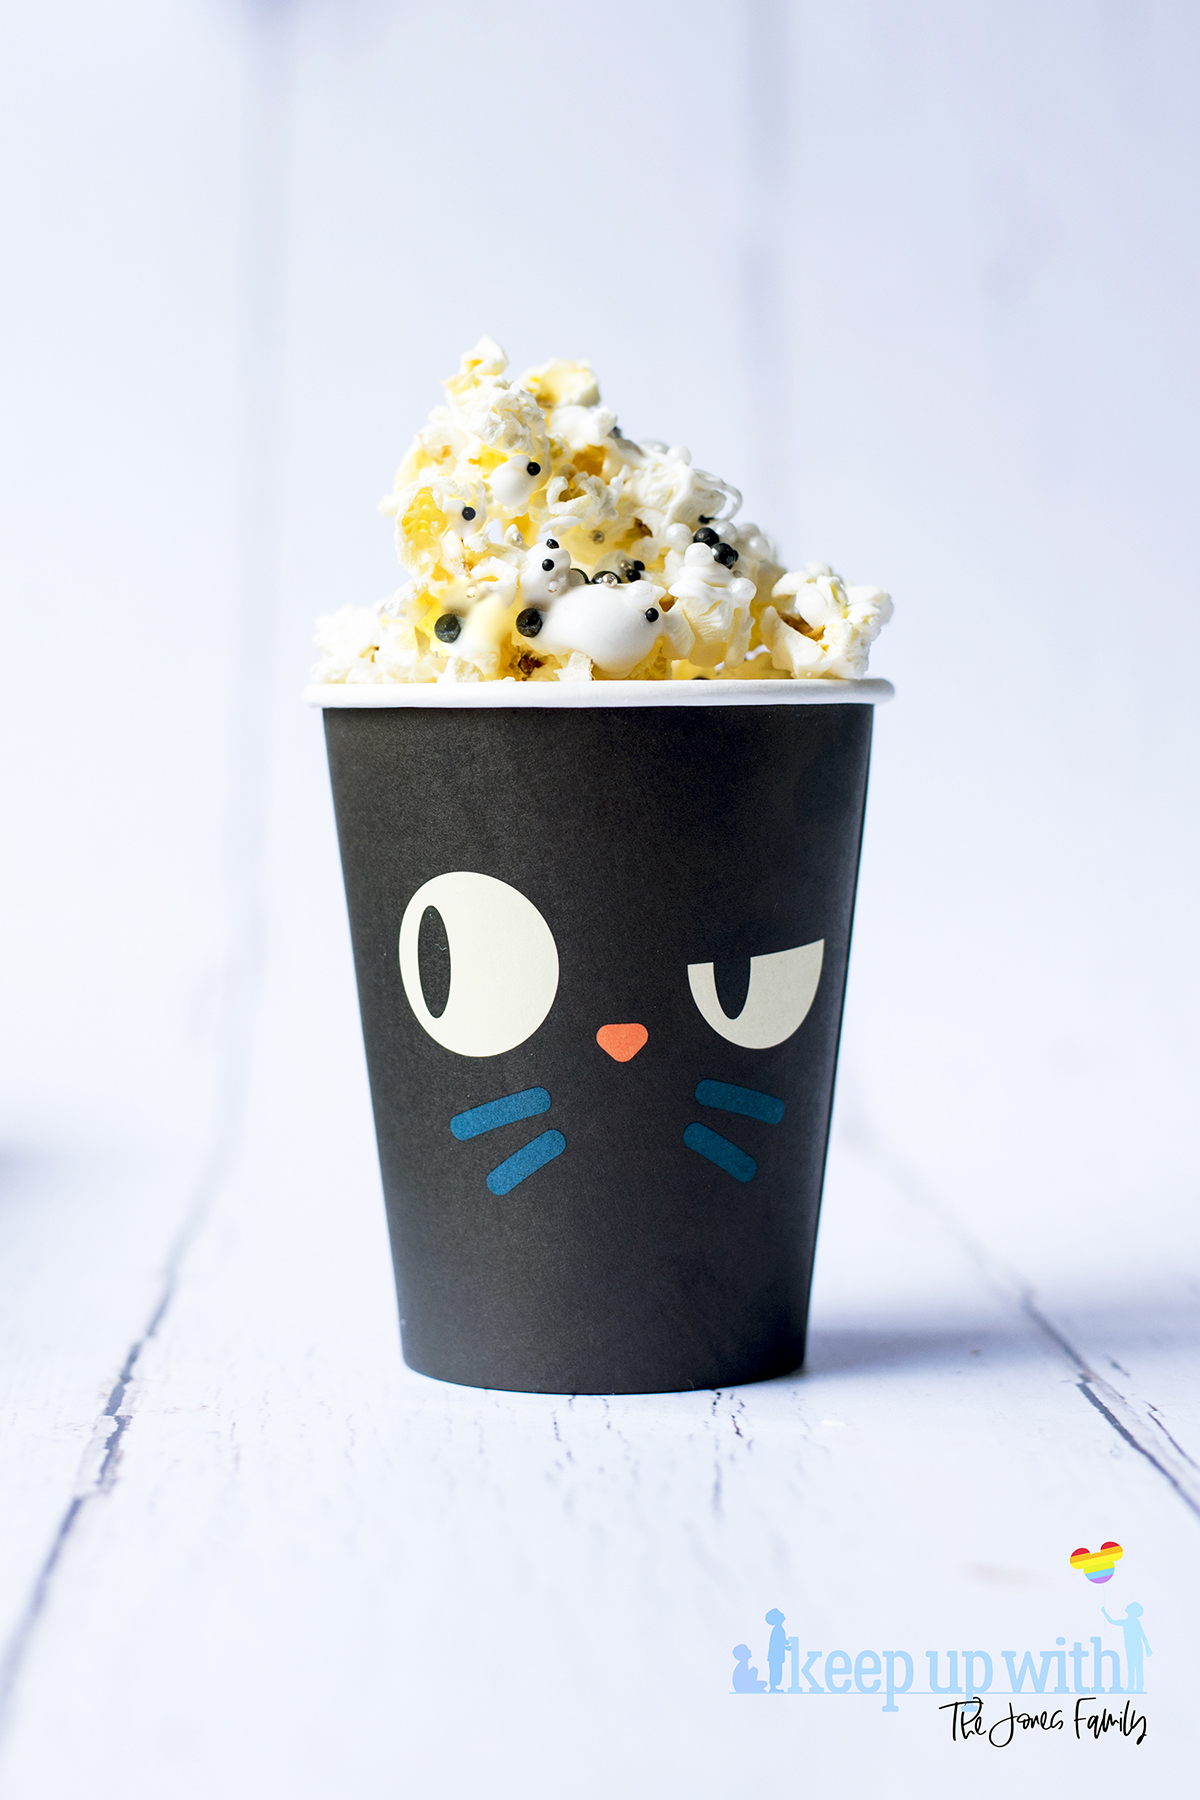 Image shows a black cat paper cup filled with disney's hocus pocus popcorn. image by keep up with the jones family.